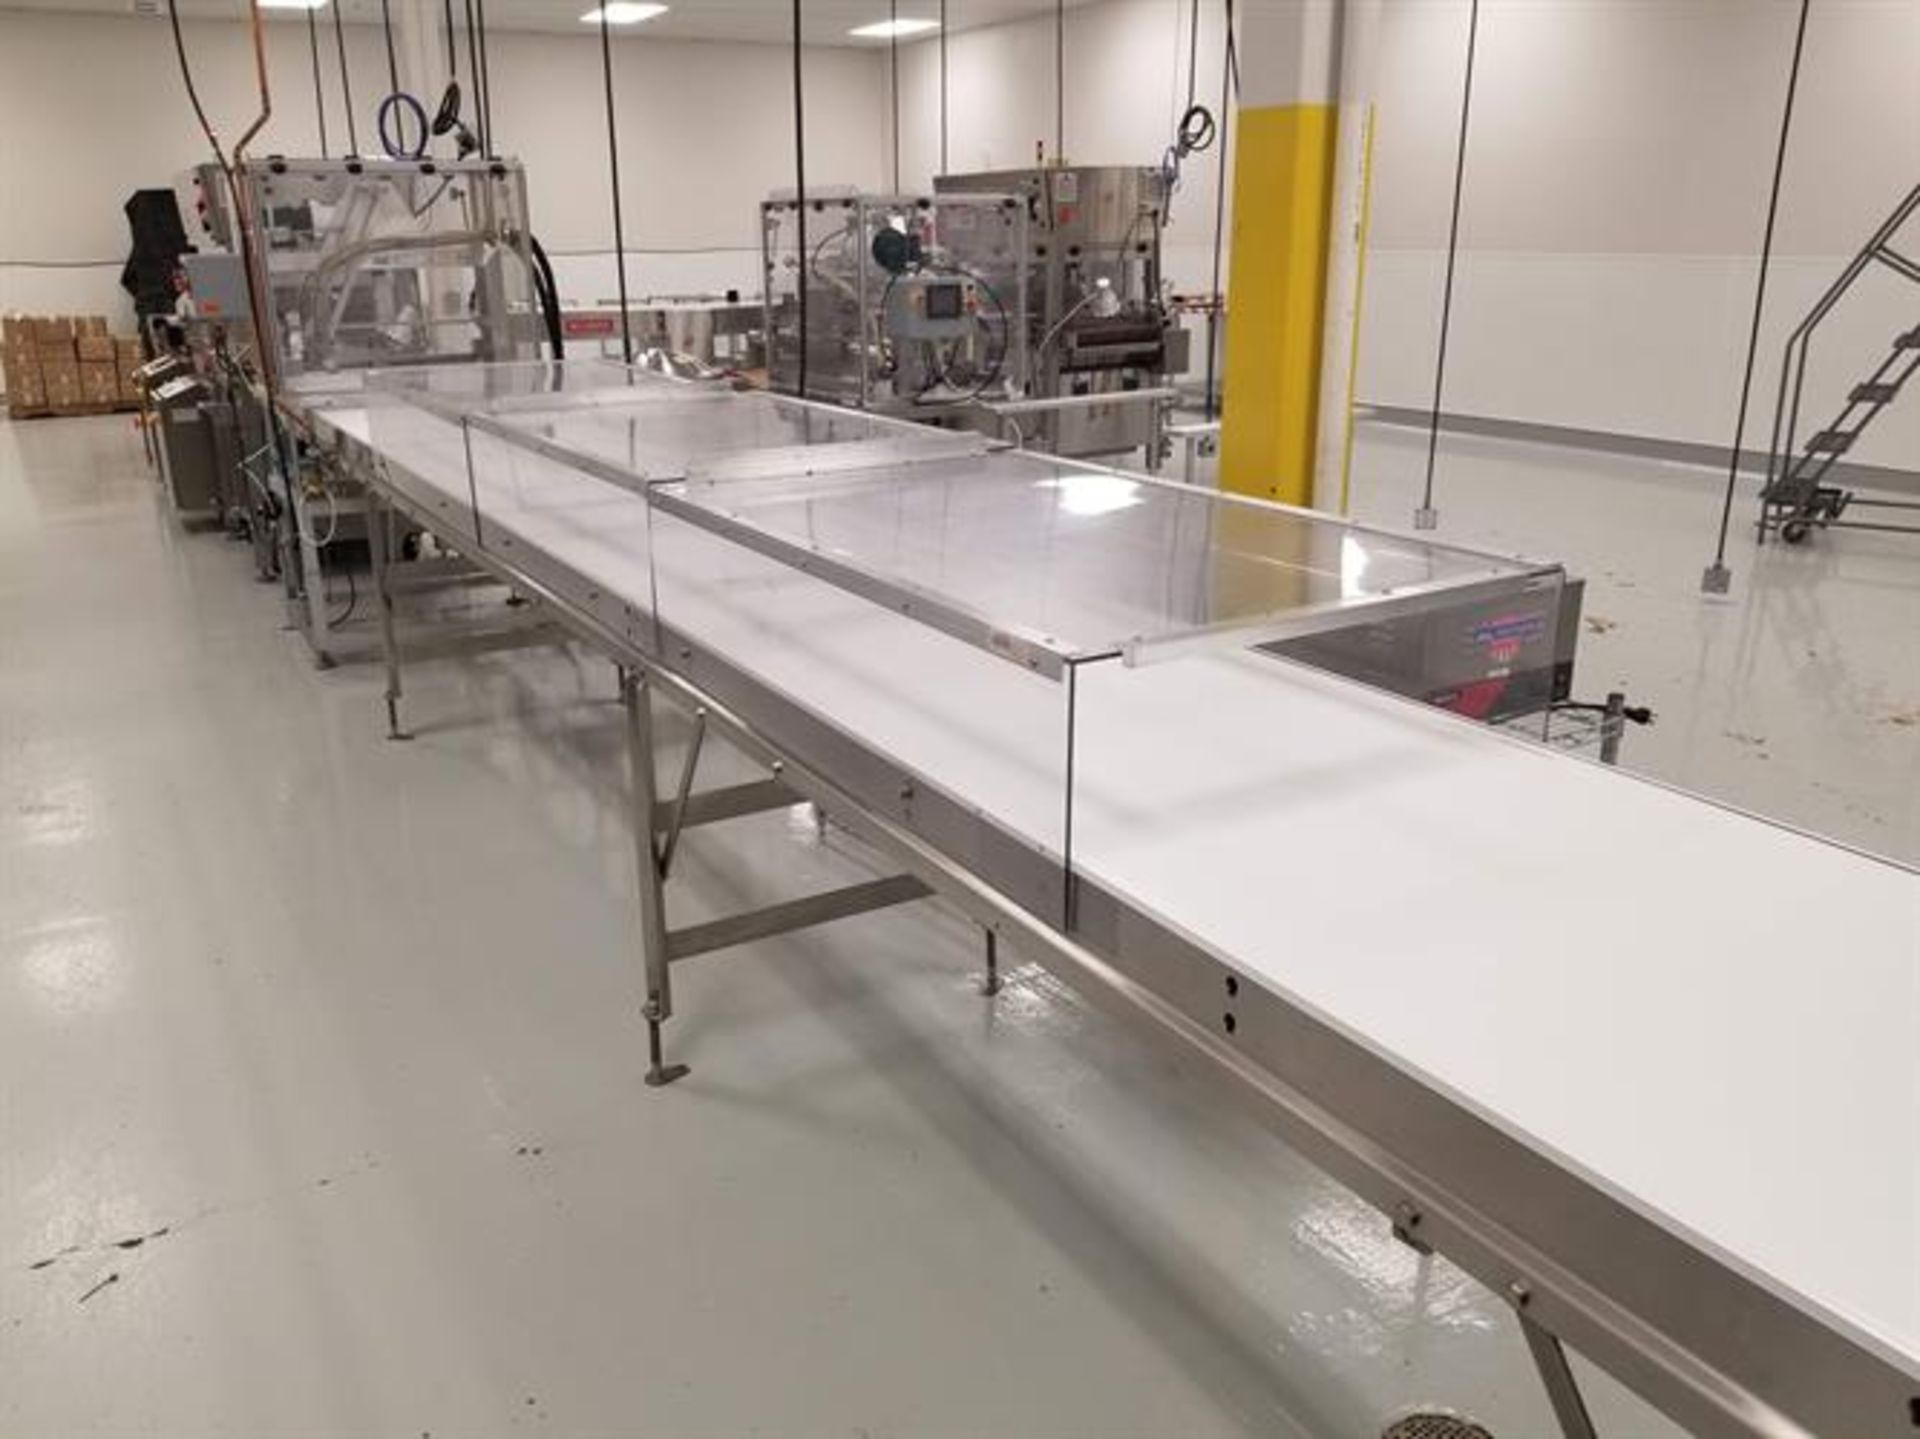 """Savage 24"""" Stainless Steel Enrobing Line - New 2016 Smith 24"""" wide x 8-ft long Stainless Steel - Image 8 of 8"""